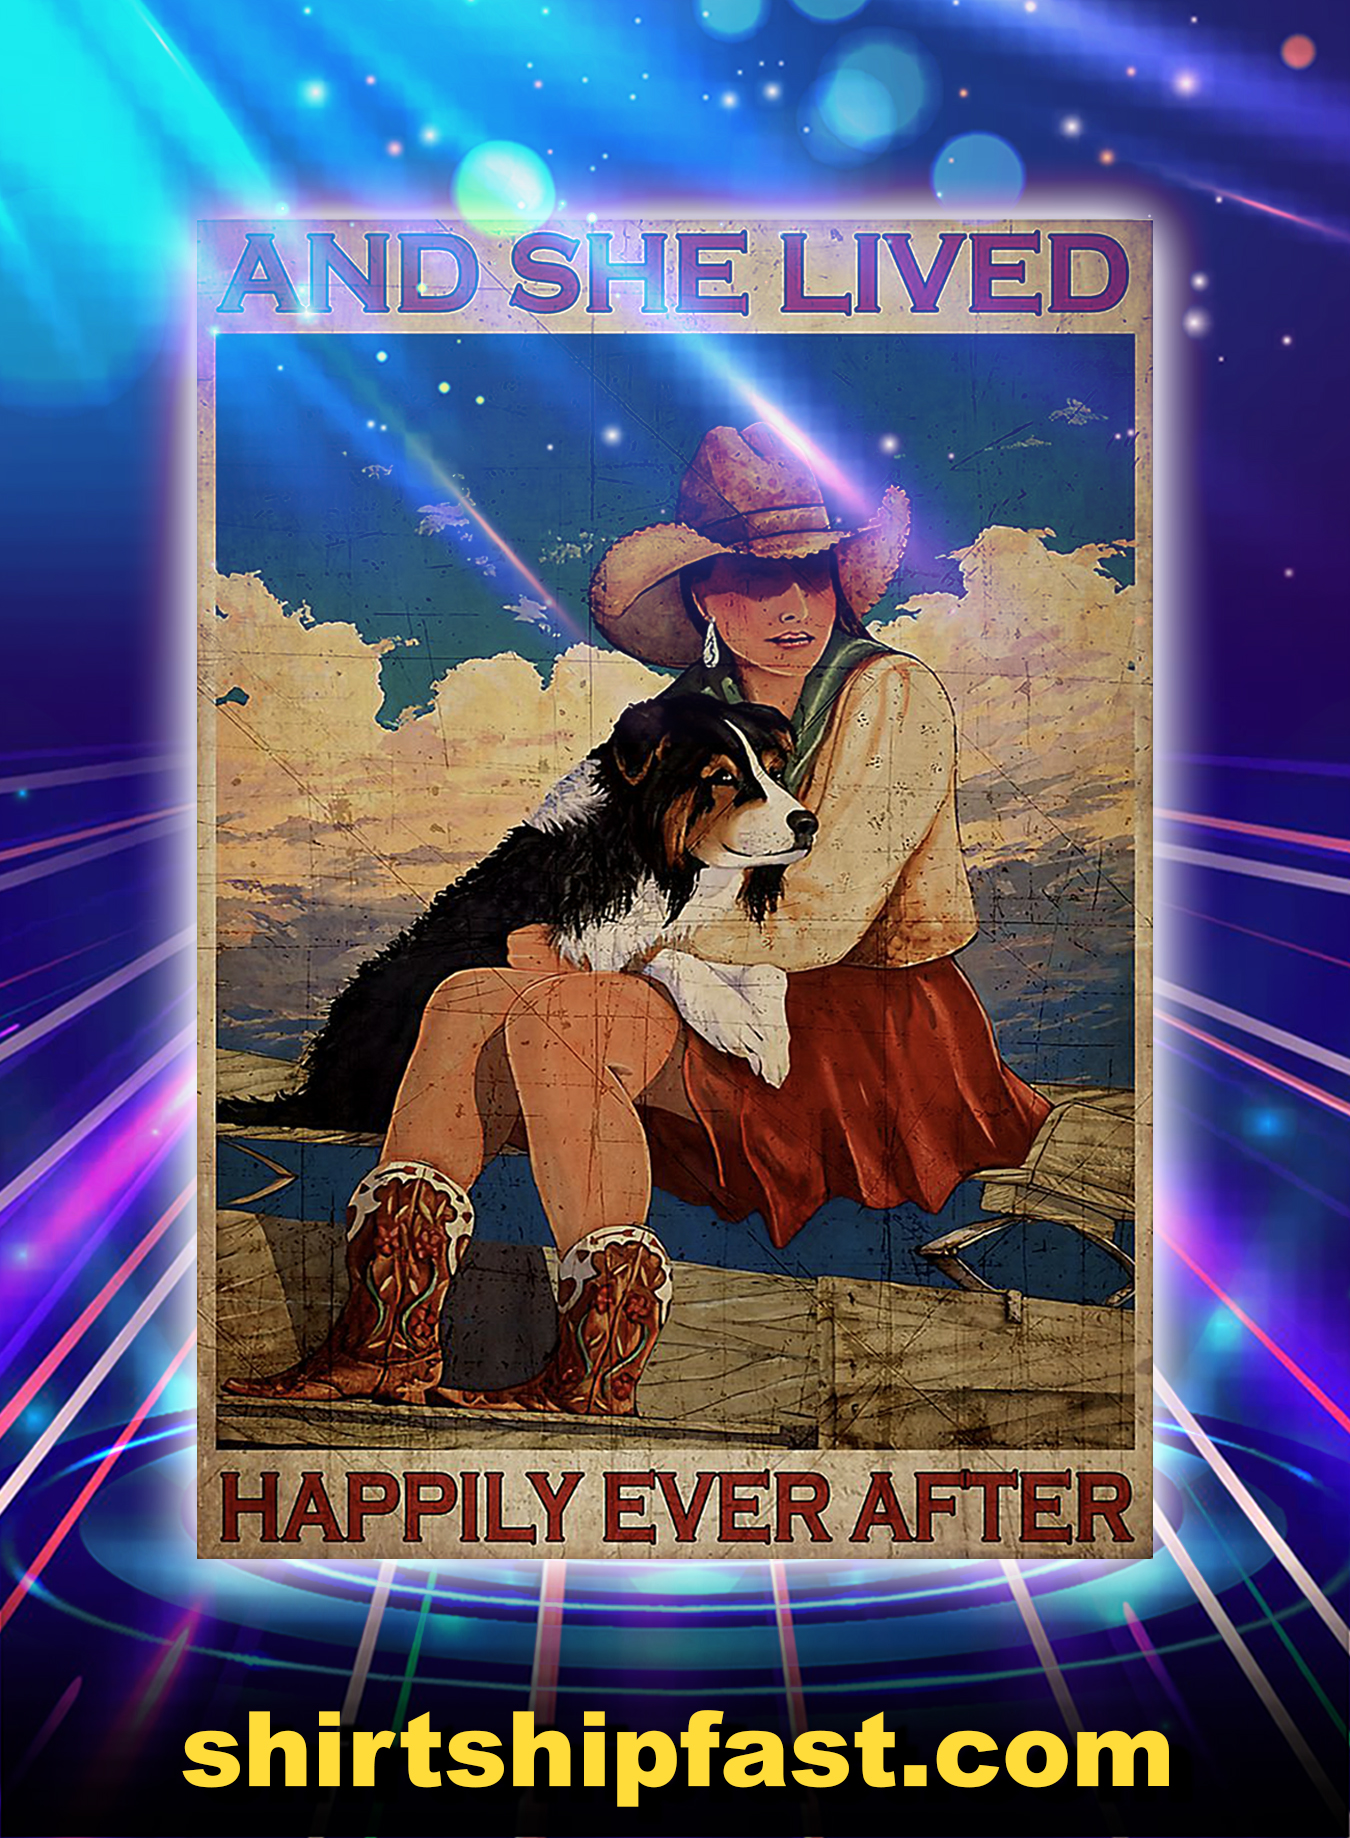 Cowgirl and dog and she lived happily ever after poster - A3